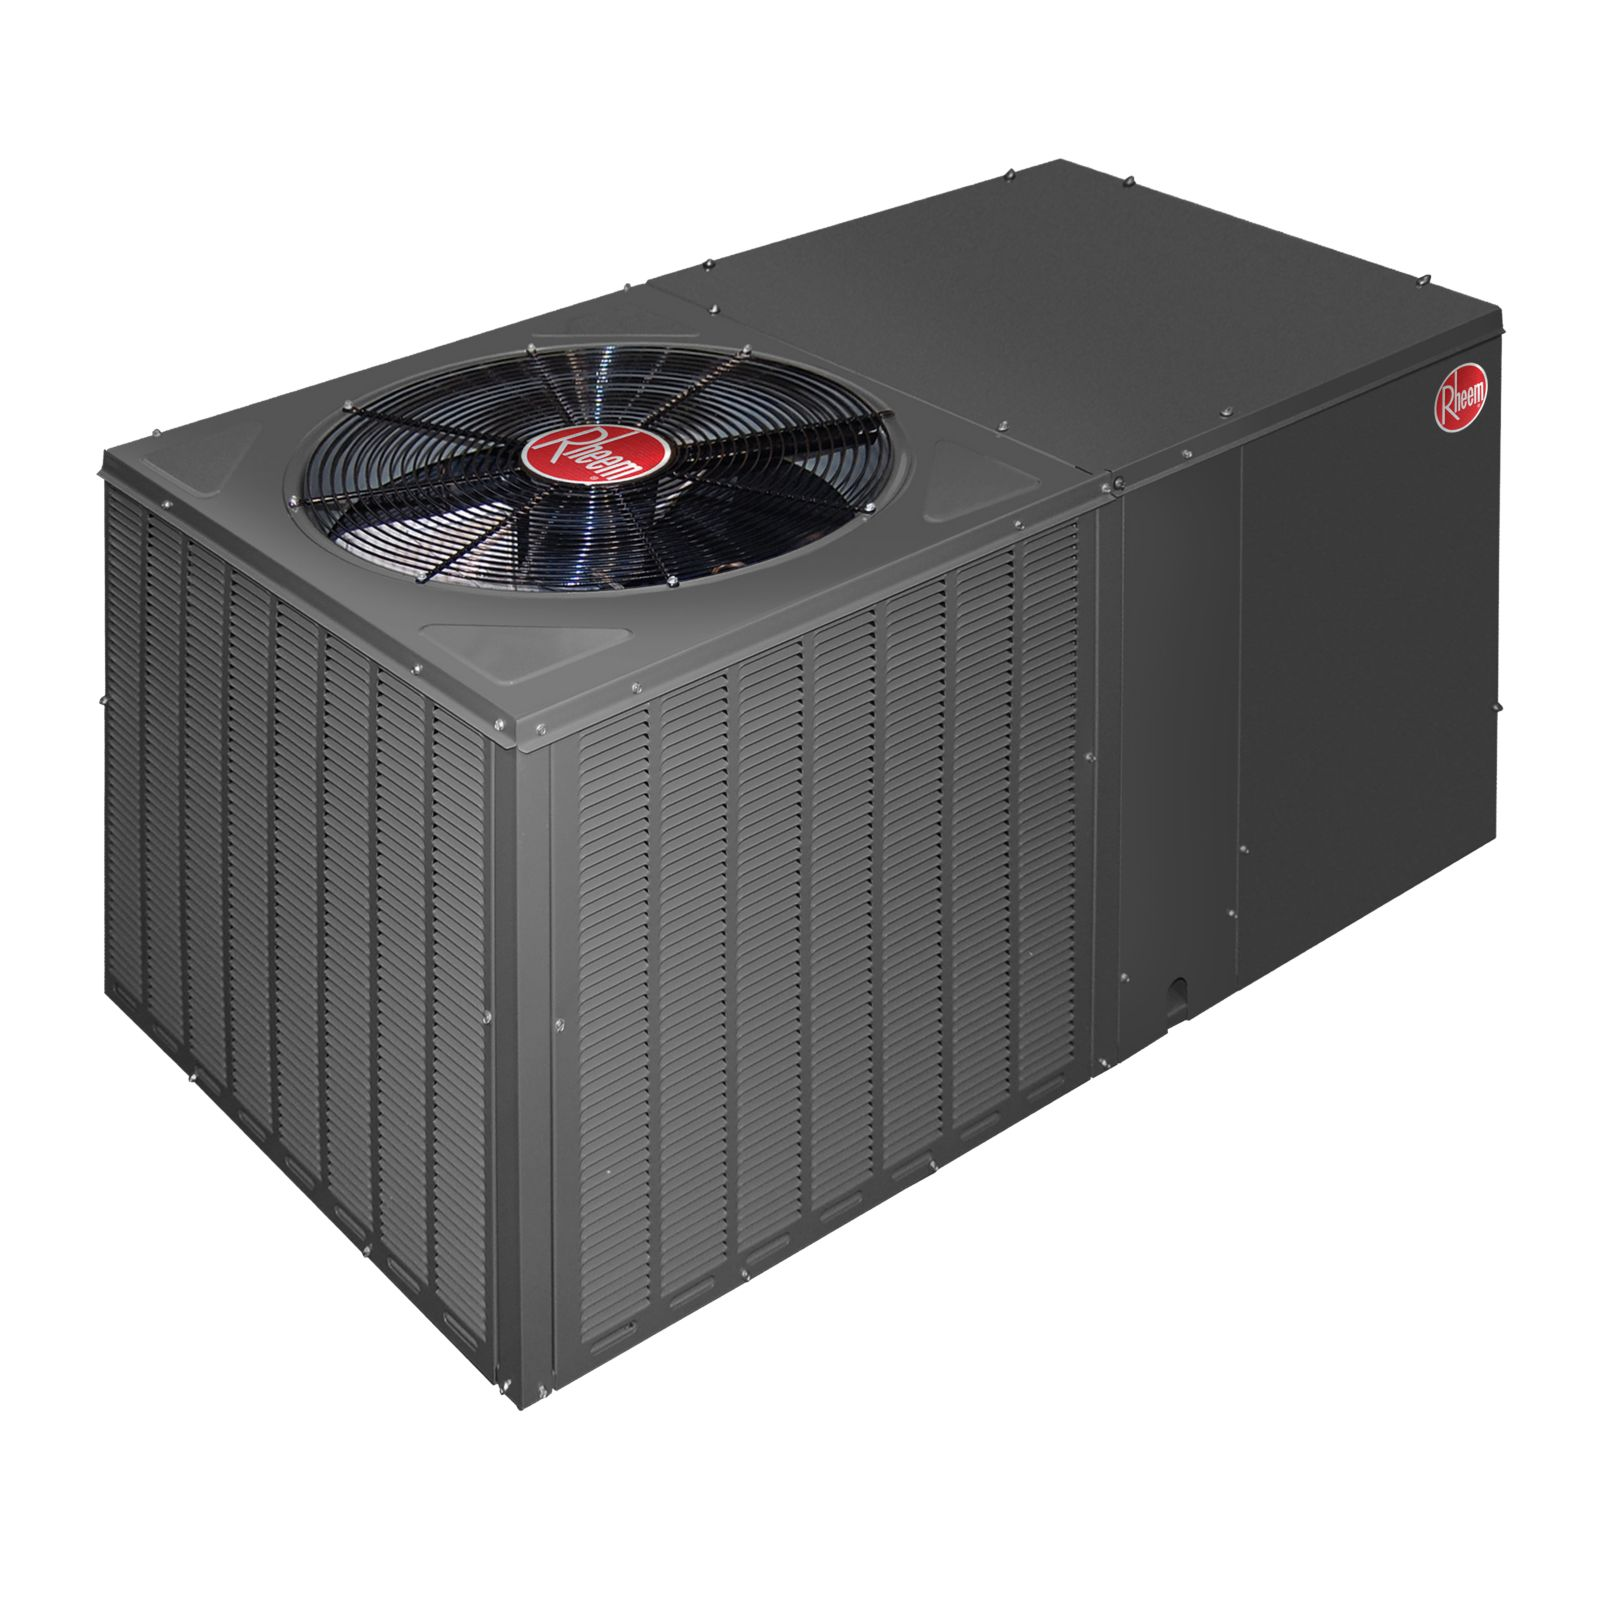 Rheem RQPM-A024JK000AUA - Classic 2 Ton 14 SEER, R-410A, Packaged Heat Pump With Horizontal Discharge, 208-230V, 1 Phase